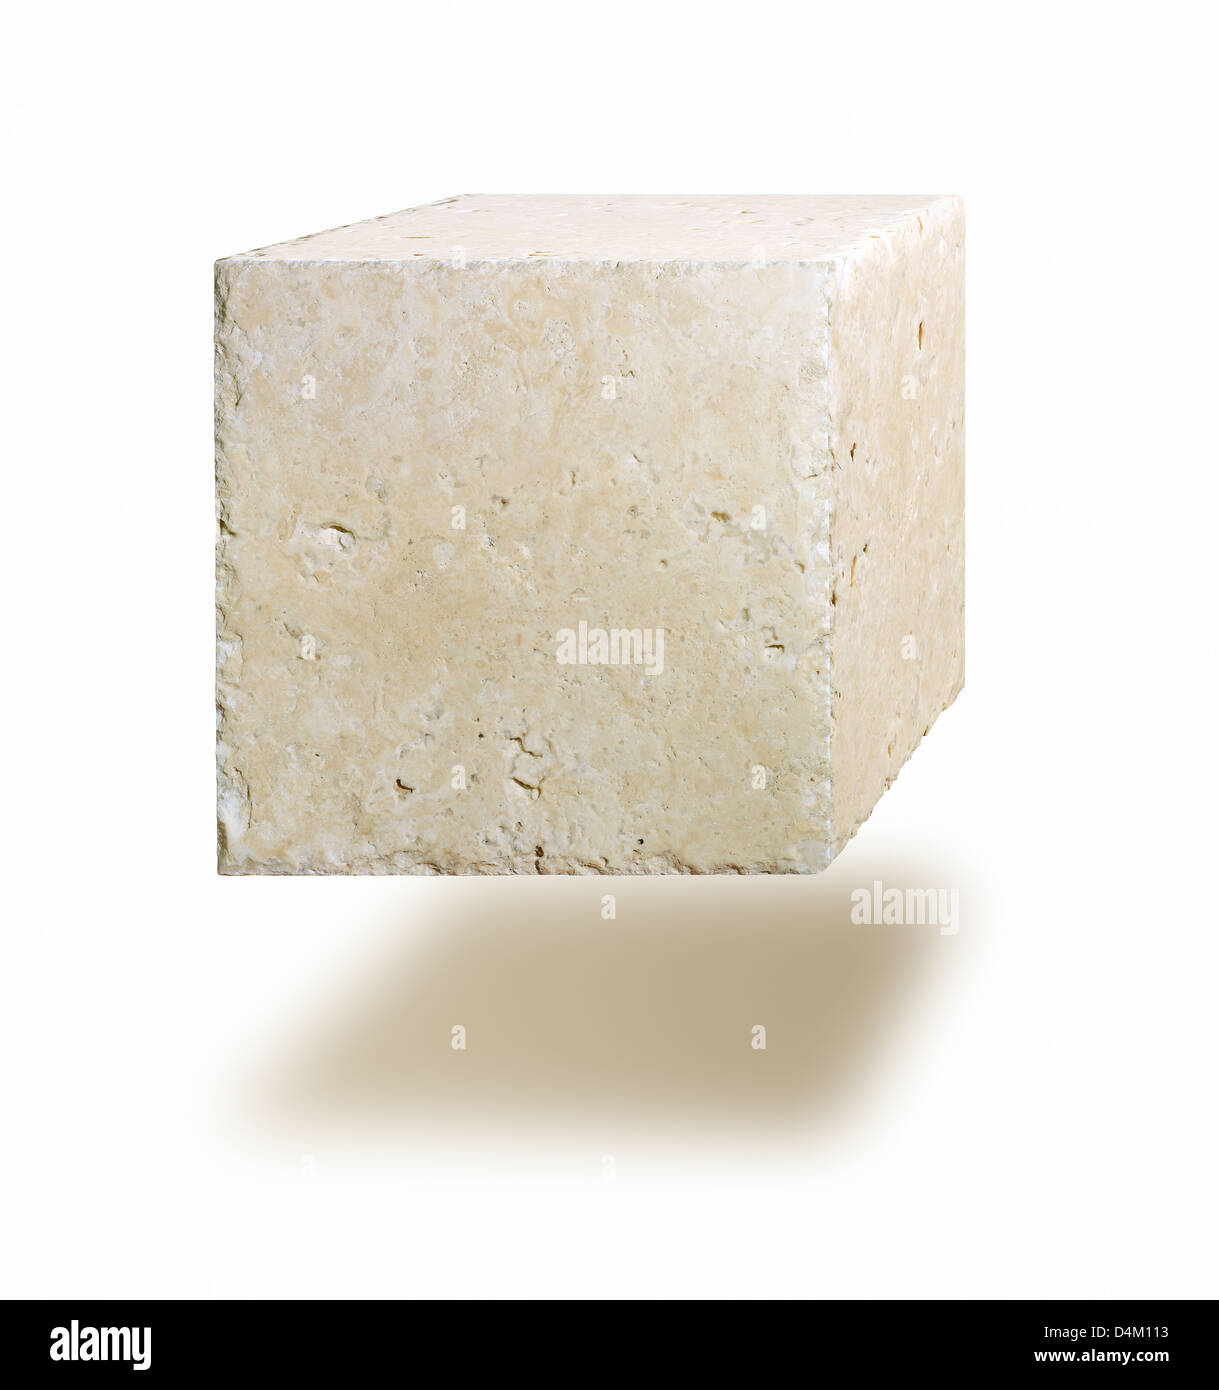 Marble cube floating in air against white background - Stock Image